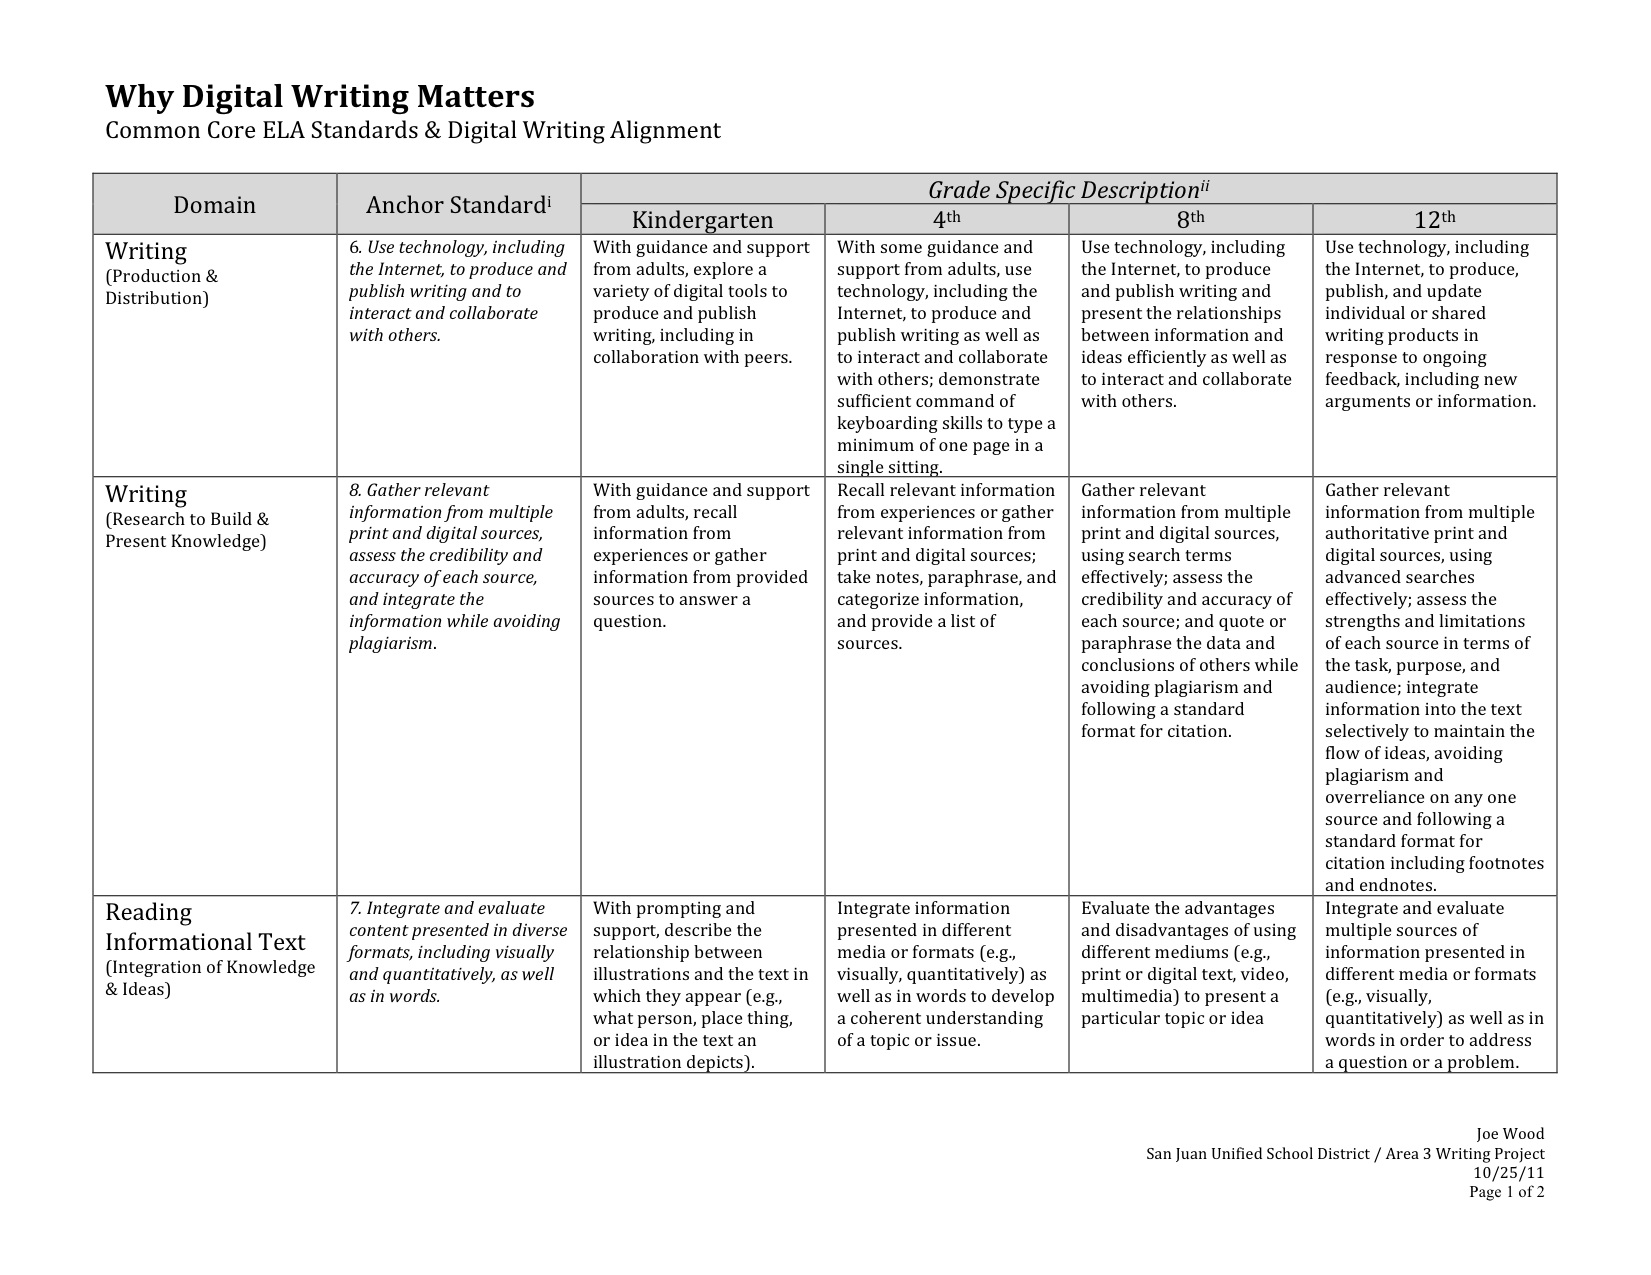 003 Middle School Research Paper Rubric Why Digital Writing Matters According To The Common Core Ela Dreaded Pdf Science Fair Full